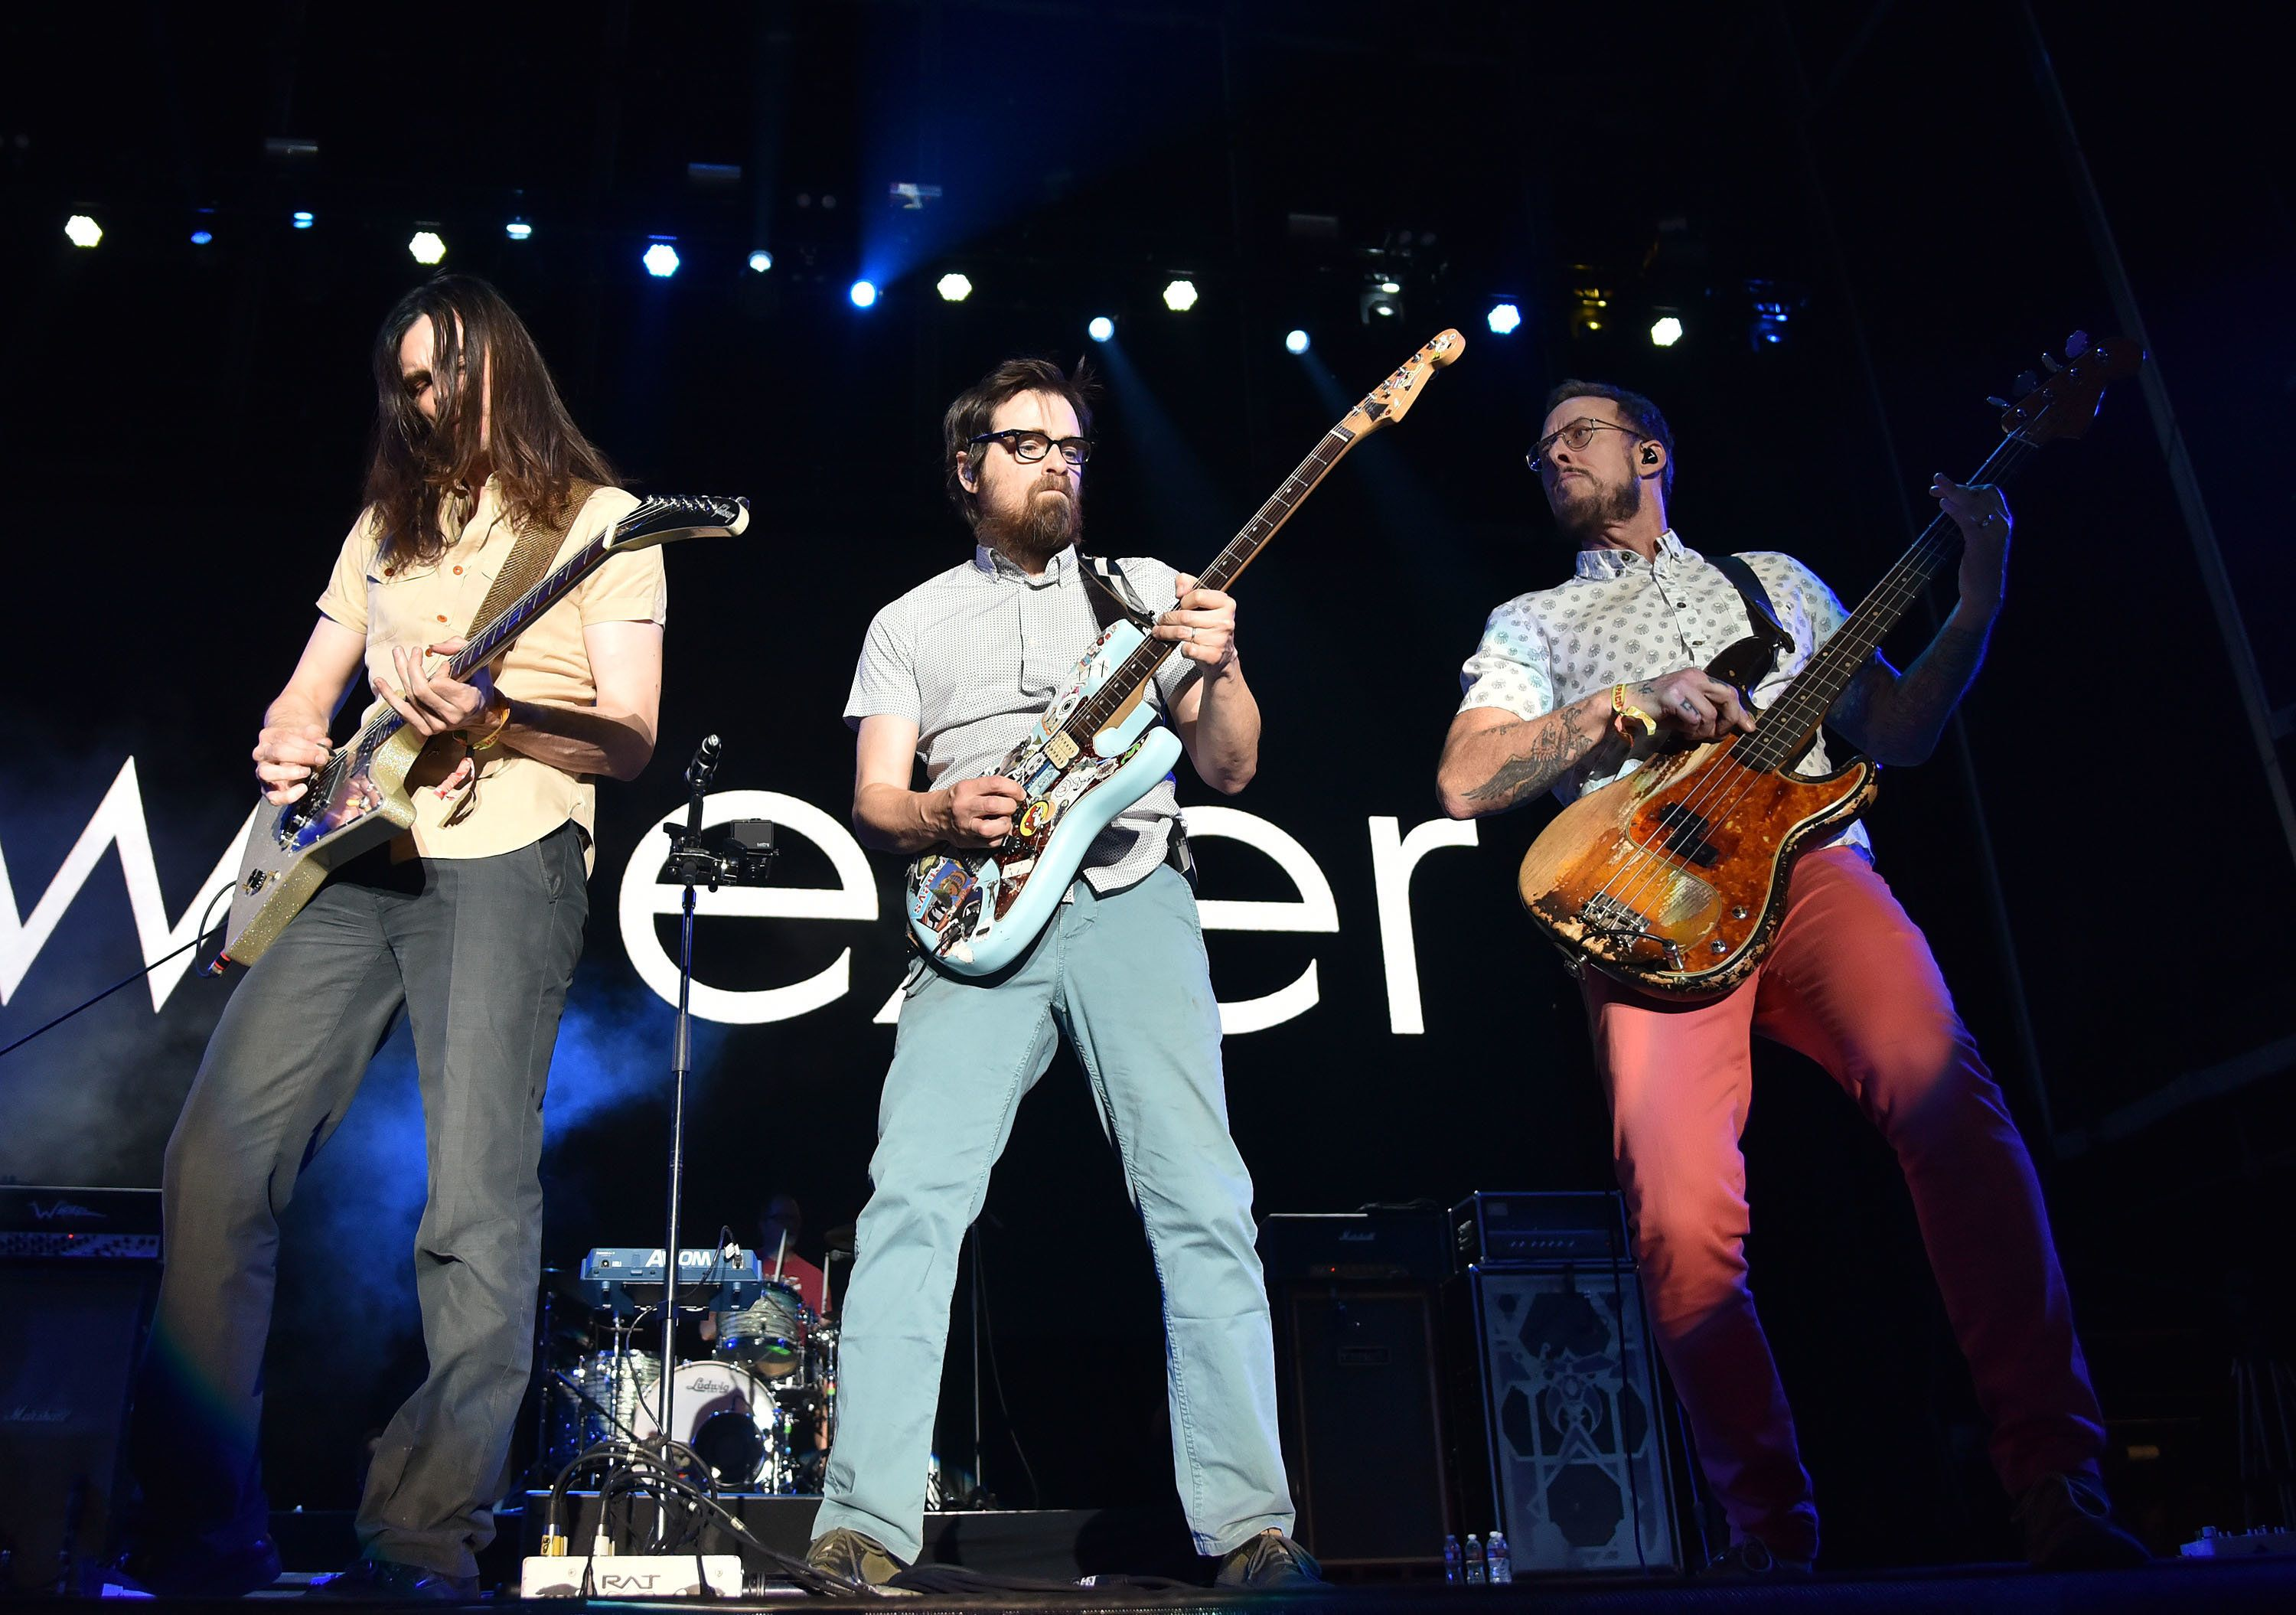 LAS VEGAS, NV - SEPTEMBER 27:  (L-R) Musicians Brian Bell, Rivers Cuomo and Scott Shriner of Weezer performs onstage during the 2015 Life is Beautiful festival on September 27, 2015 in Las Vegas, Nevada.  (Photo by C Flanigan/FilmMagic)